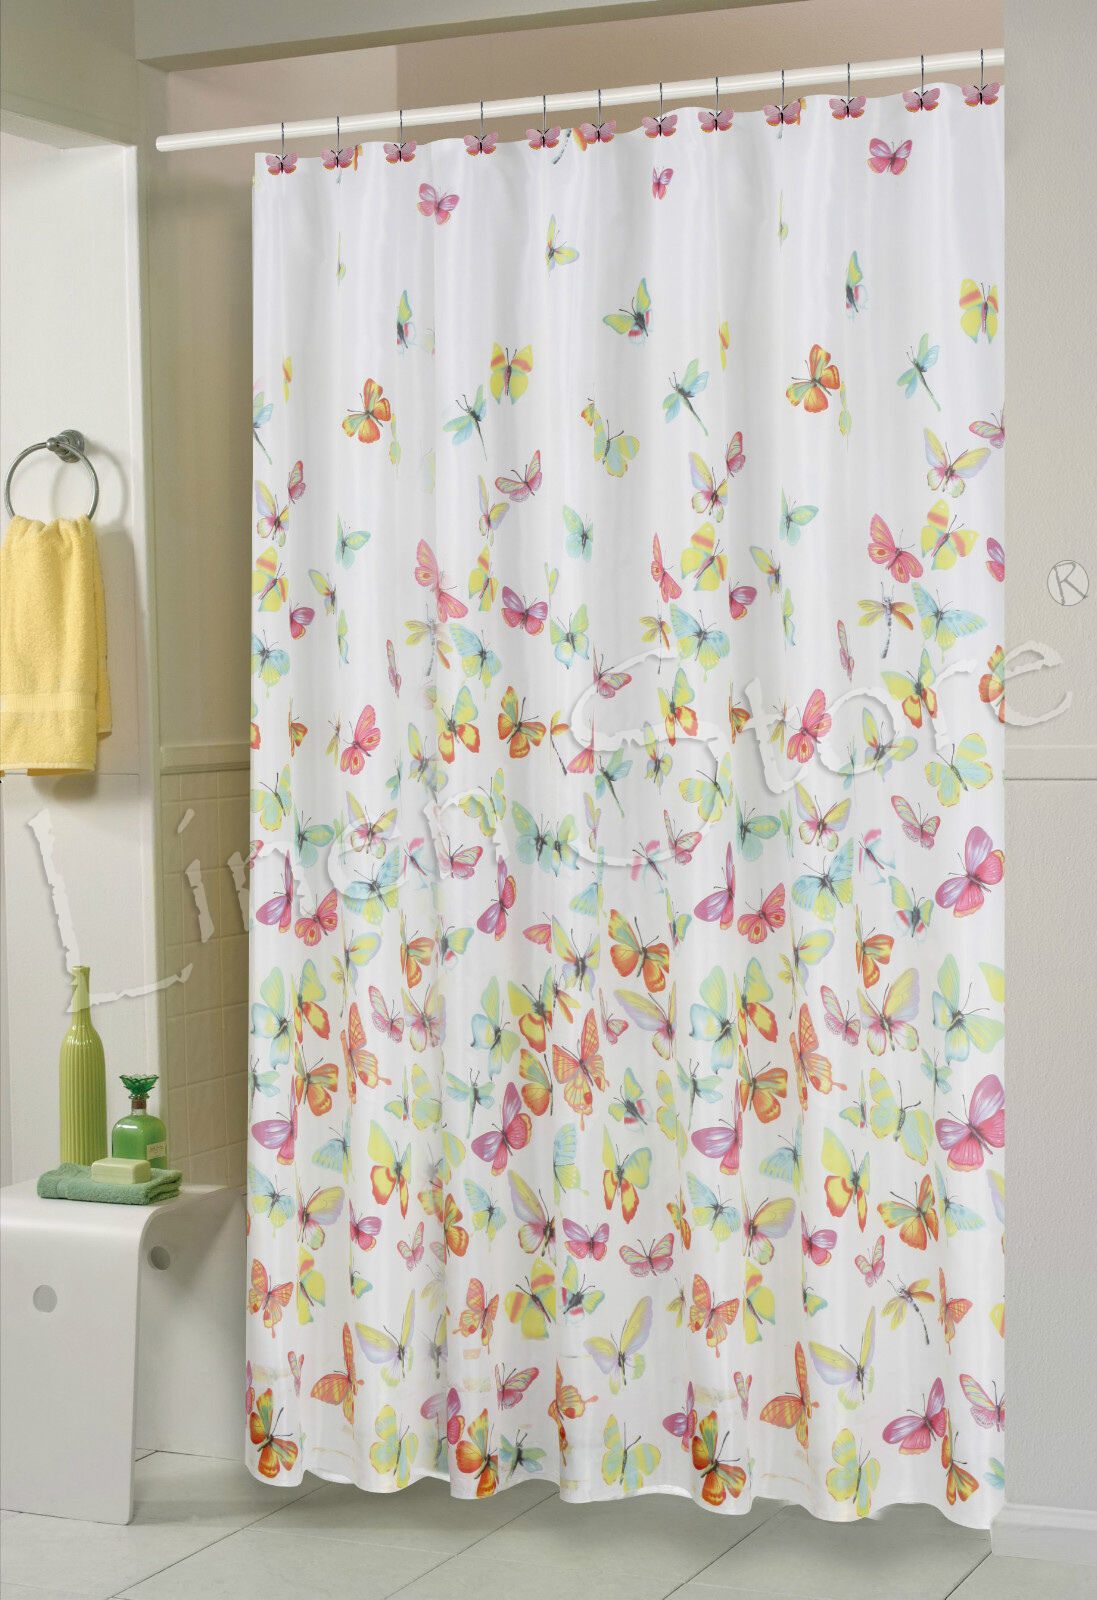 BUTTERFLY FABRIC SHOWER CURTAIN 70x70 COLORFUL BUTTERFLIES PRINTED TALIN  eBay